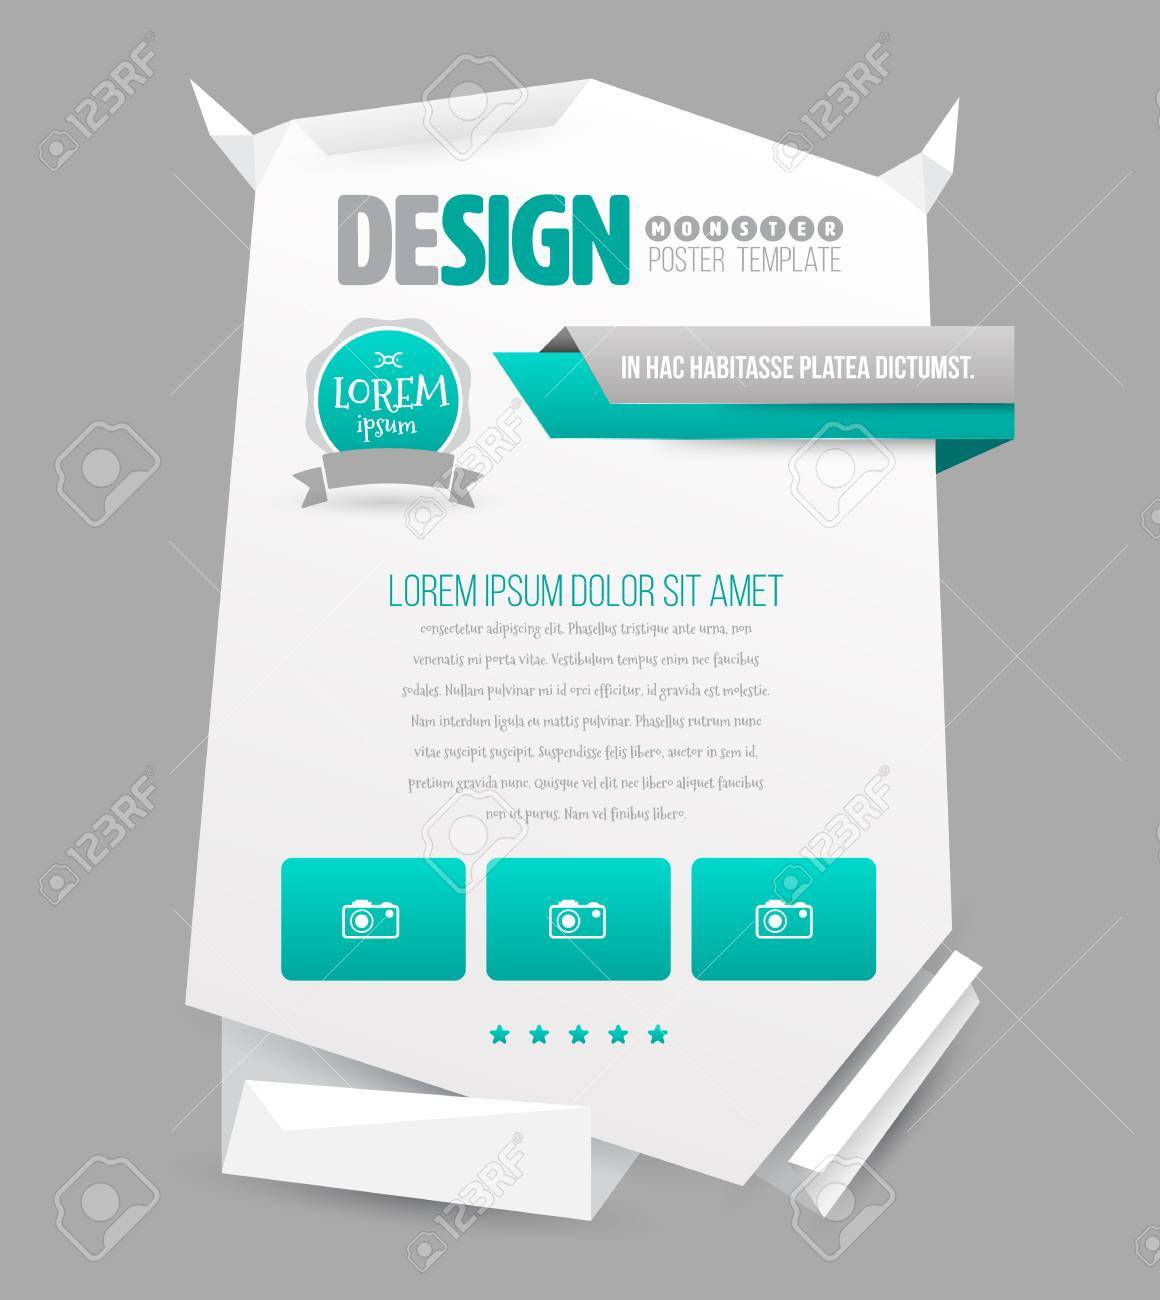 What paper weight gsm should you use to print on? Design Inc,Paper ...